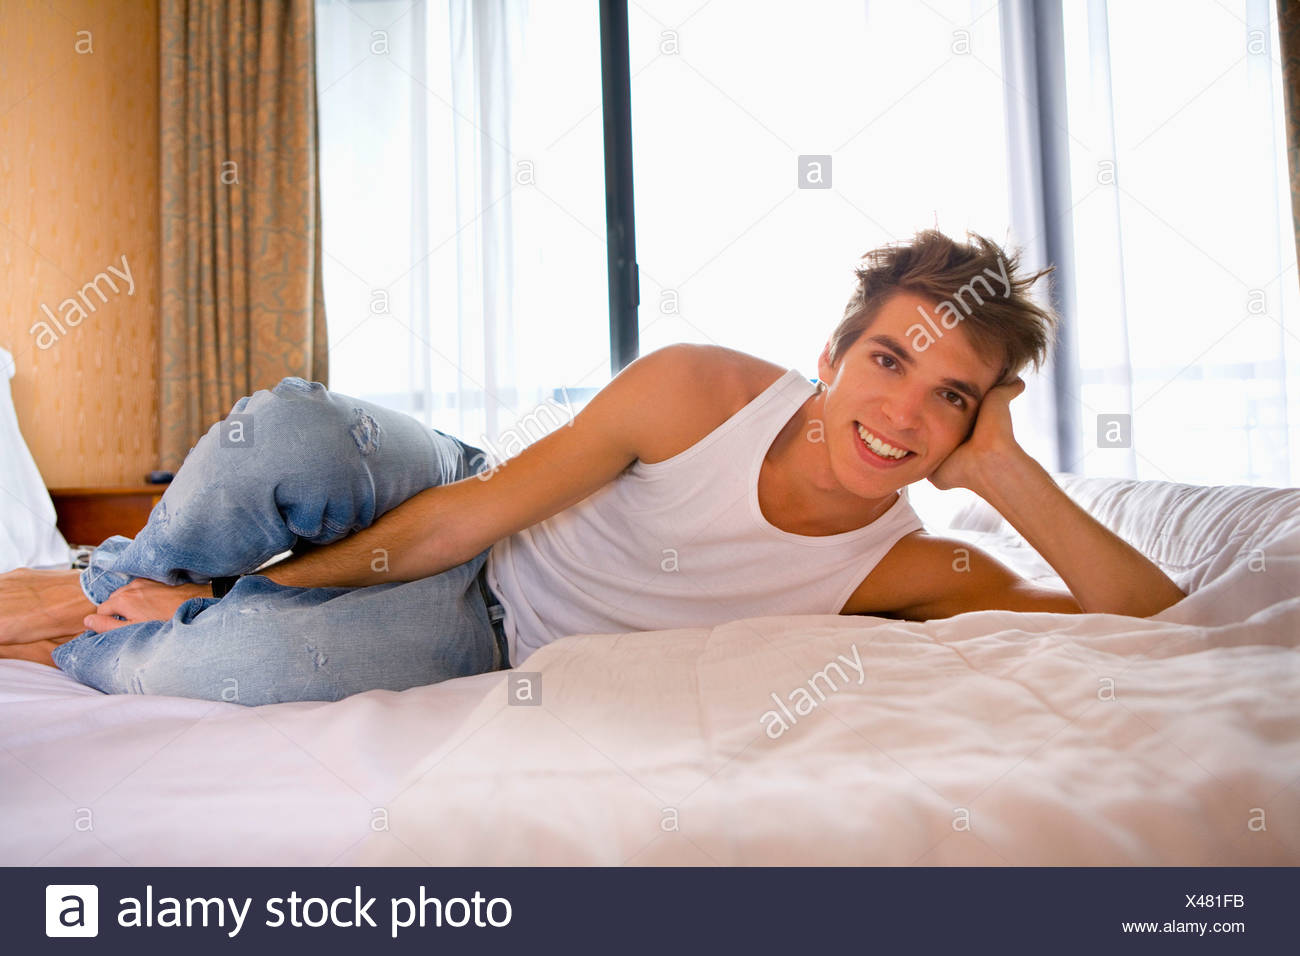 Young man smiles lays on bed. - Stock Image